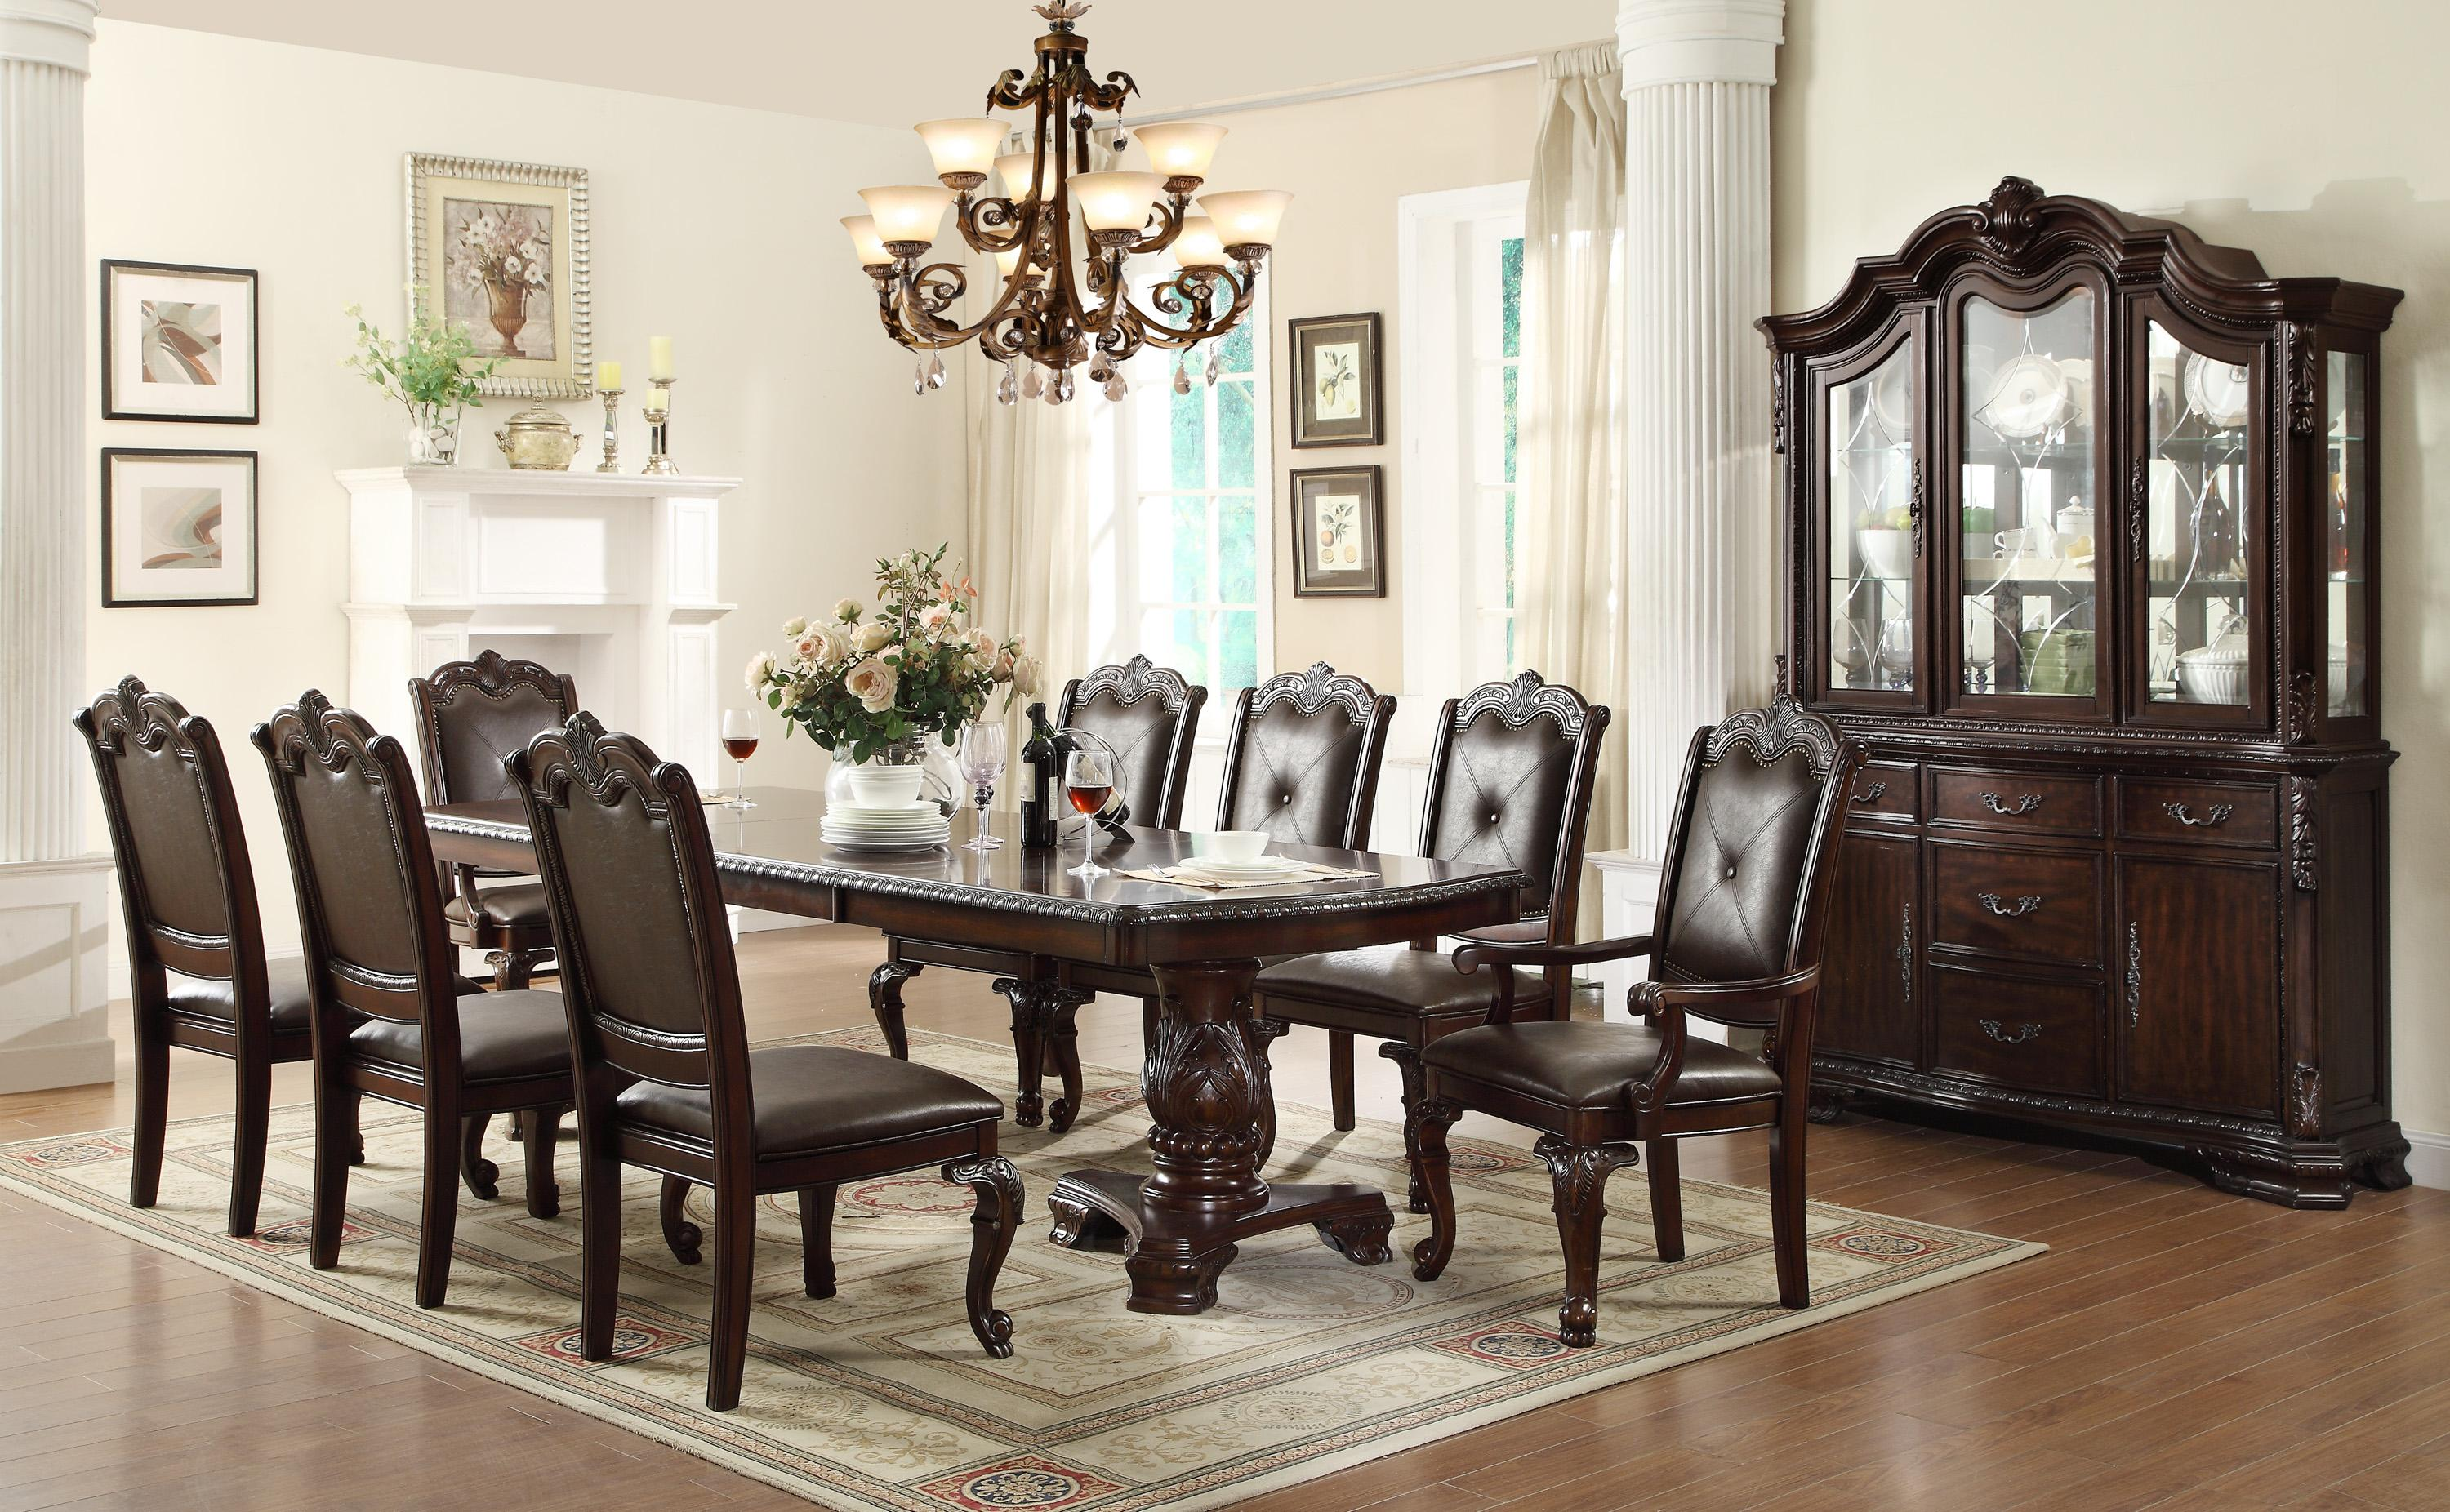 Belfort essentials kiera formal dining room group for Formal dining table